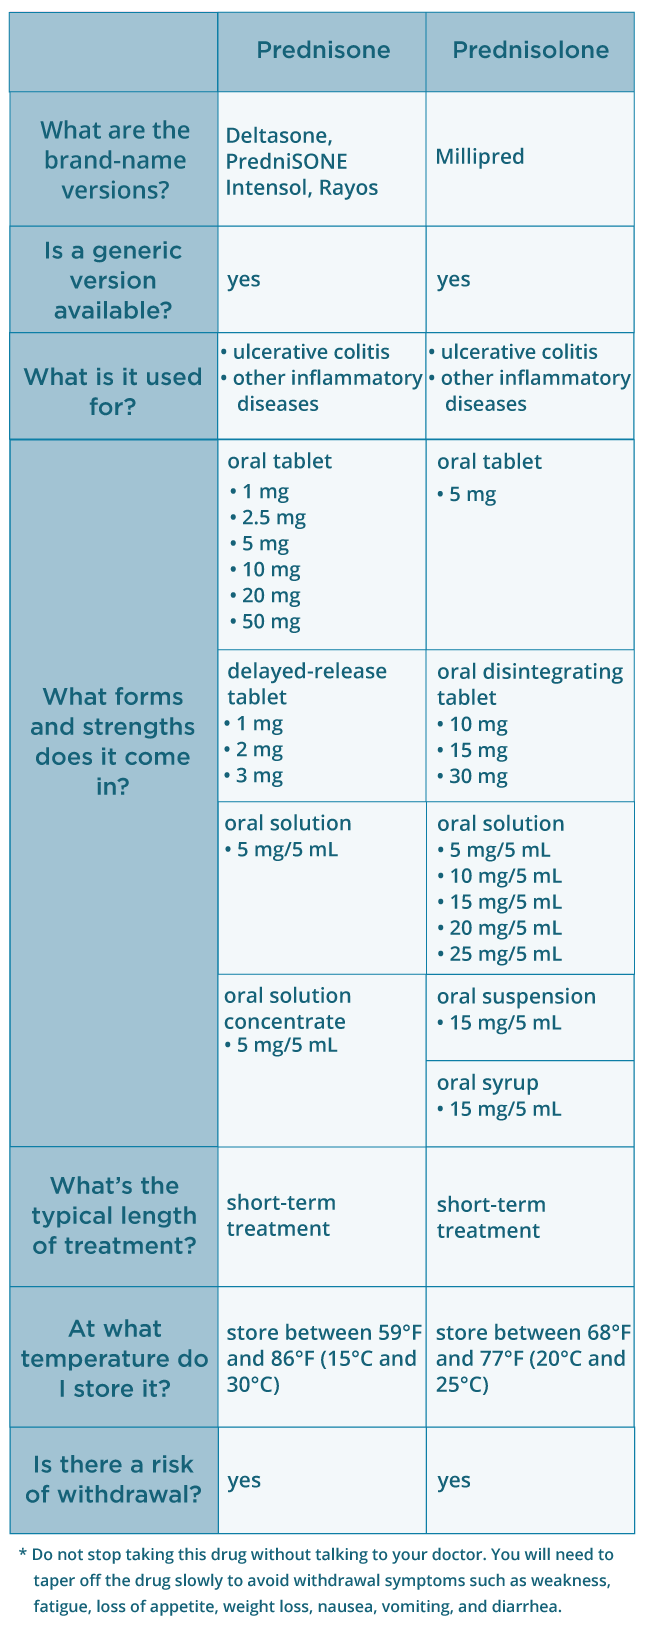 warfarin interactions with prednisone